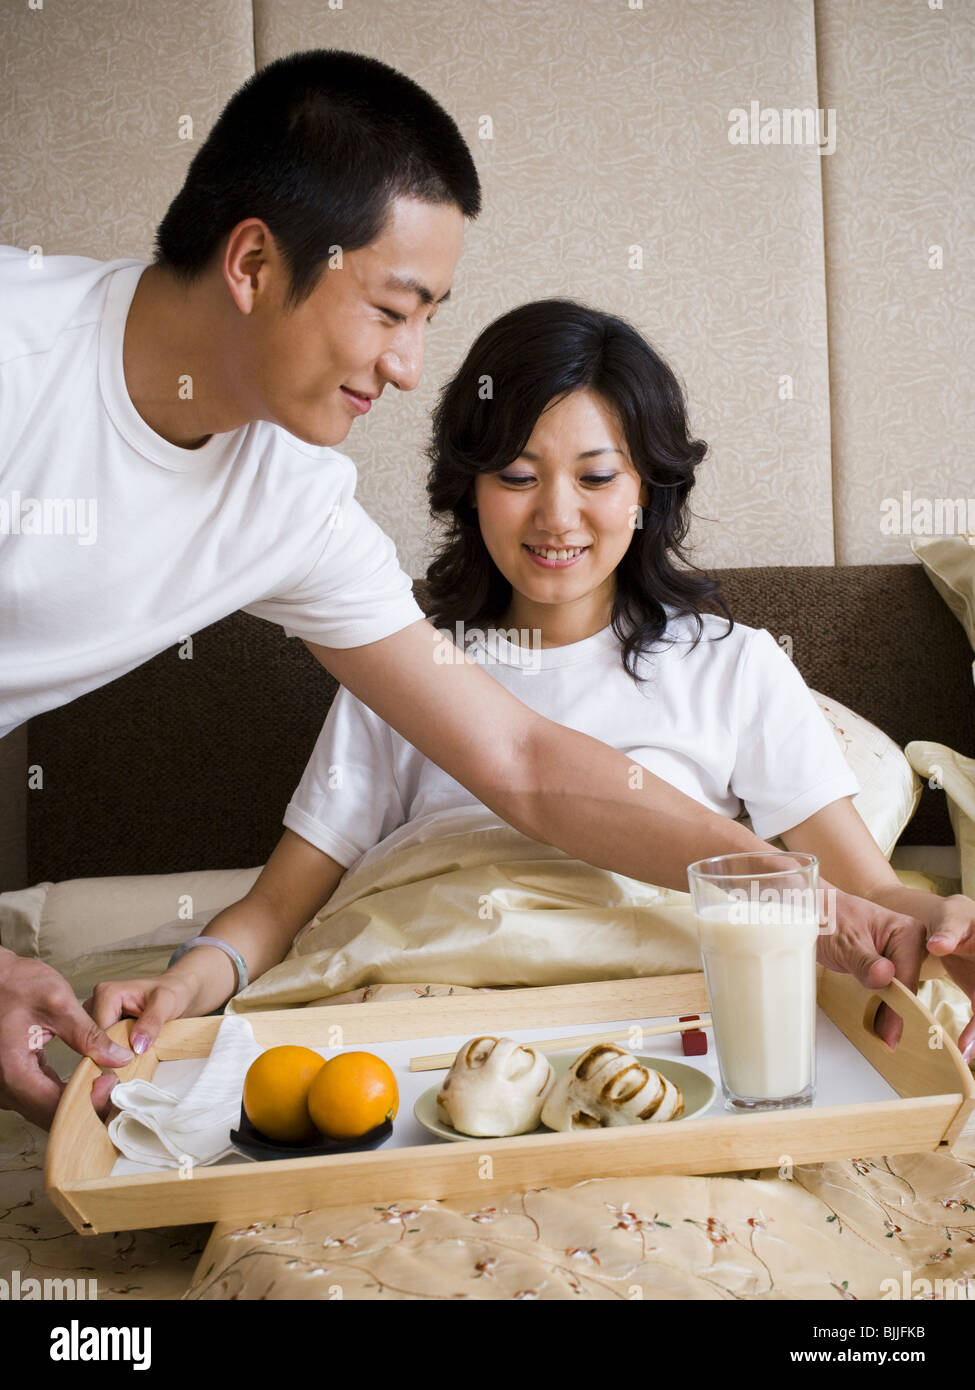 Man bringing woman breakfast in bed - Stock Image